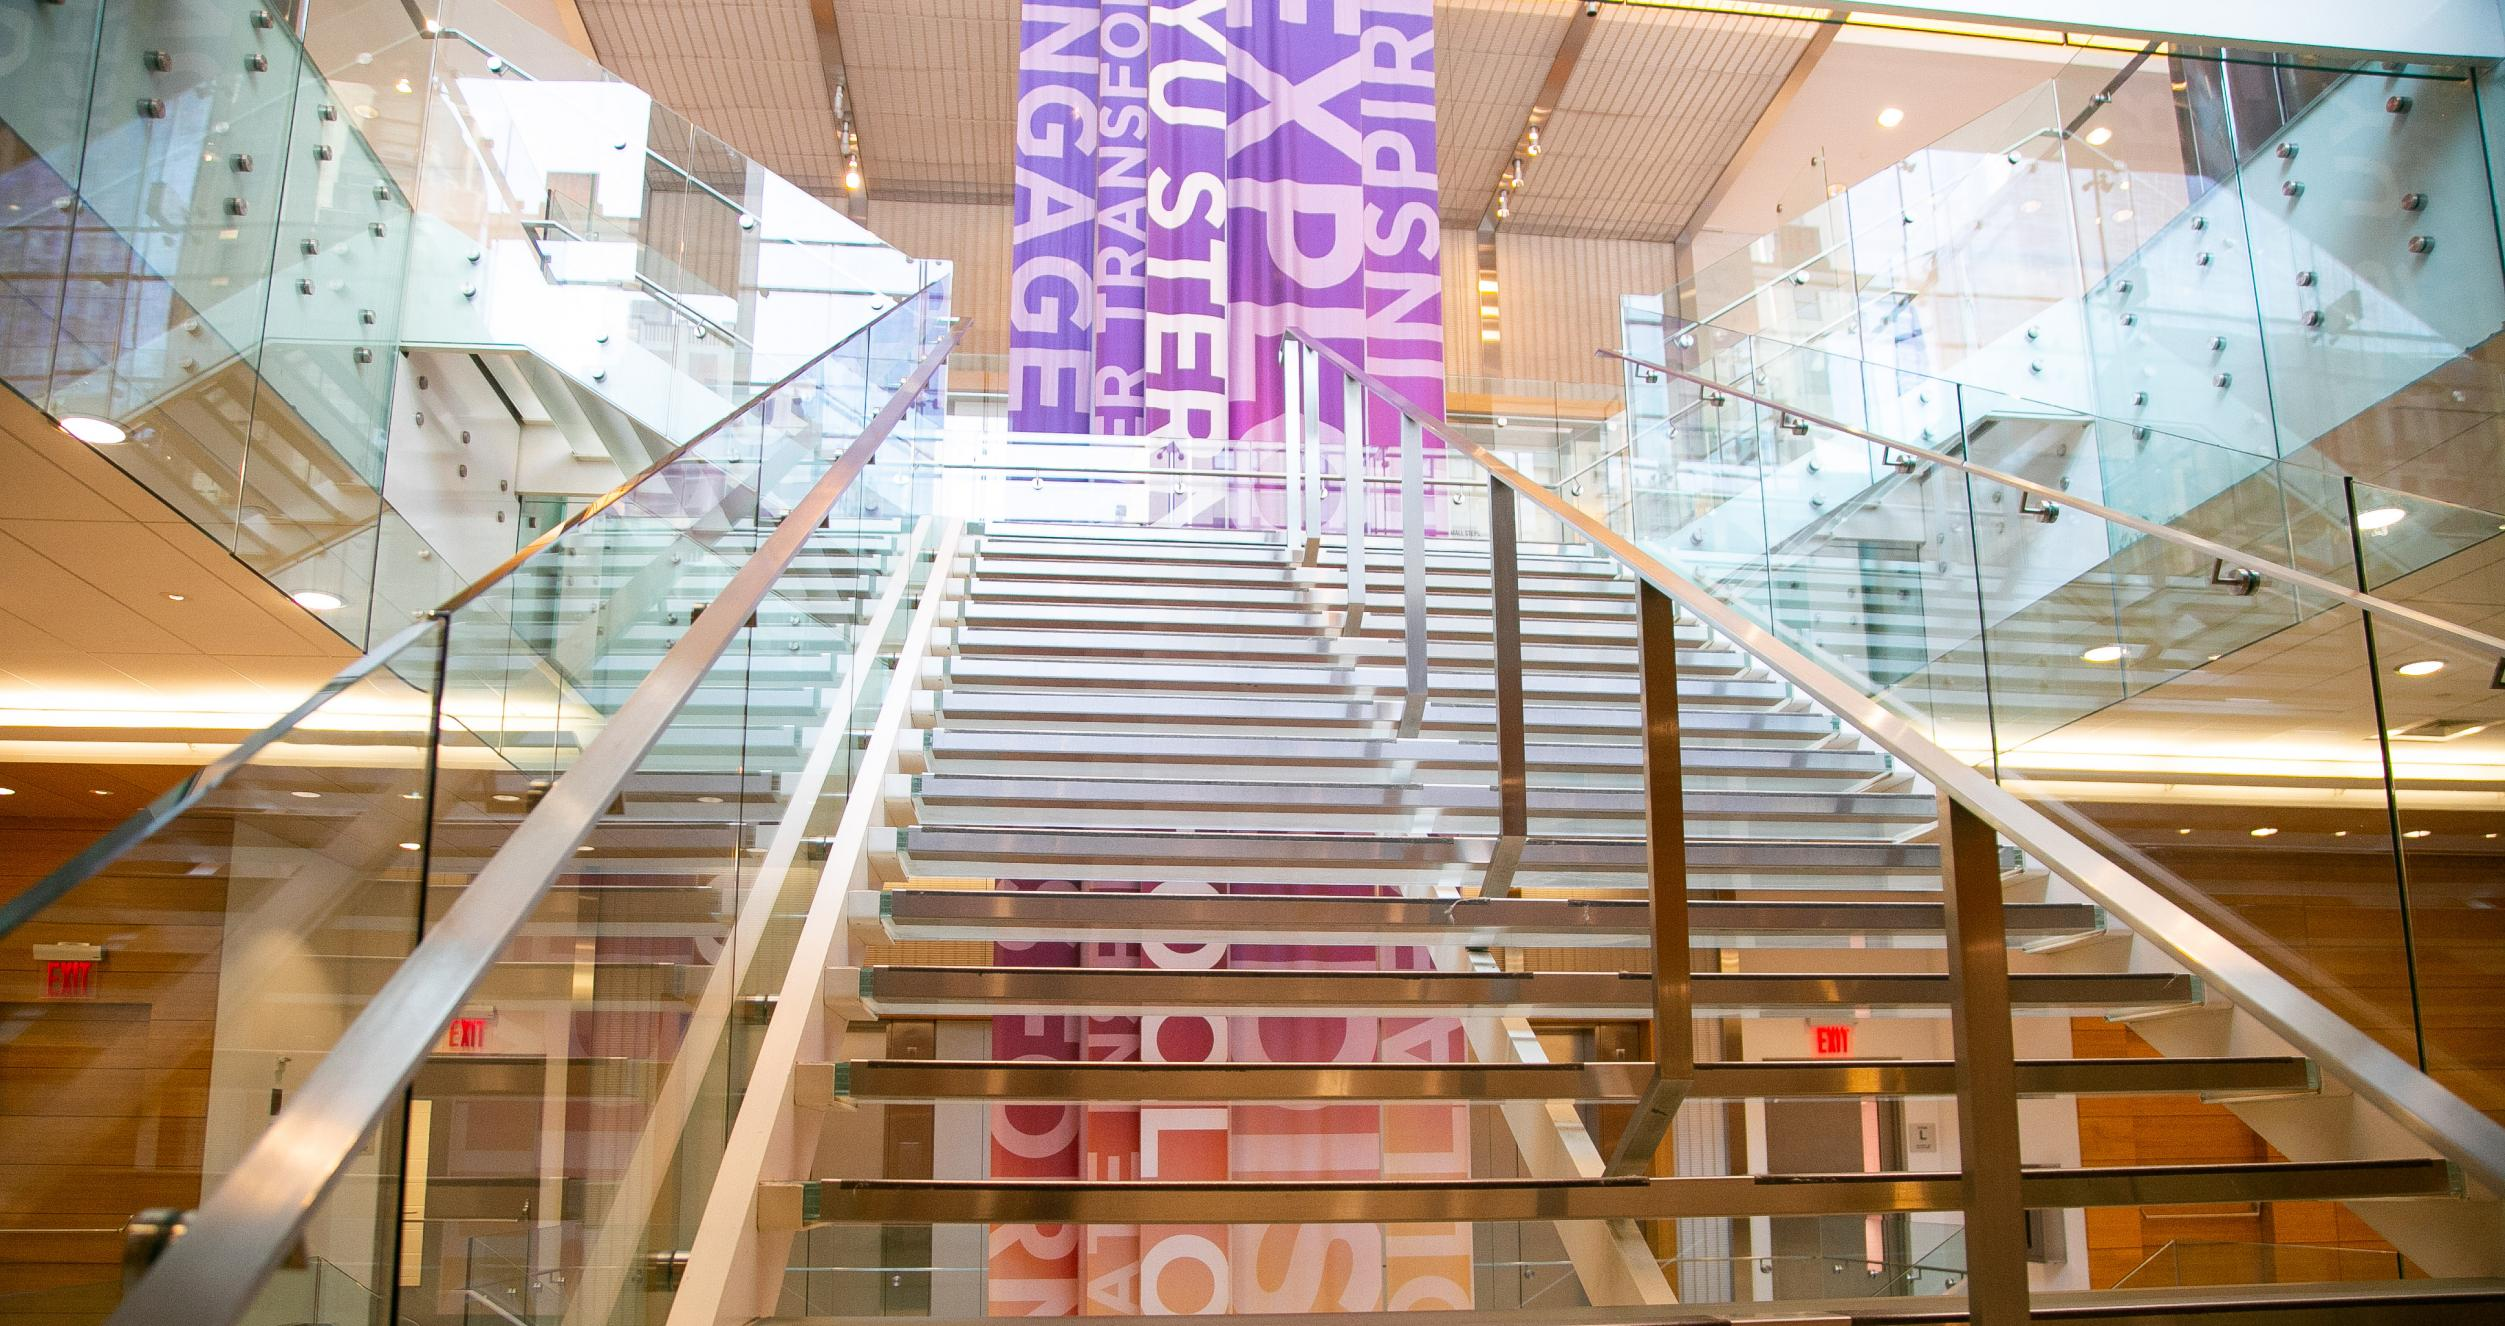 View from the bottom of a modern-looking glass stairway with a multi-colored banner behind it, located in Tisch Hall.